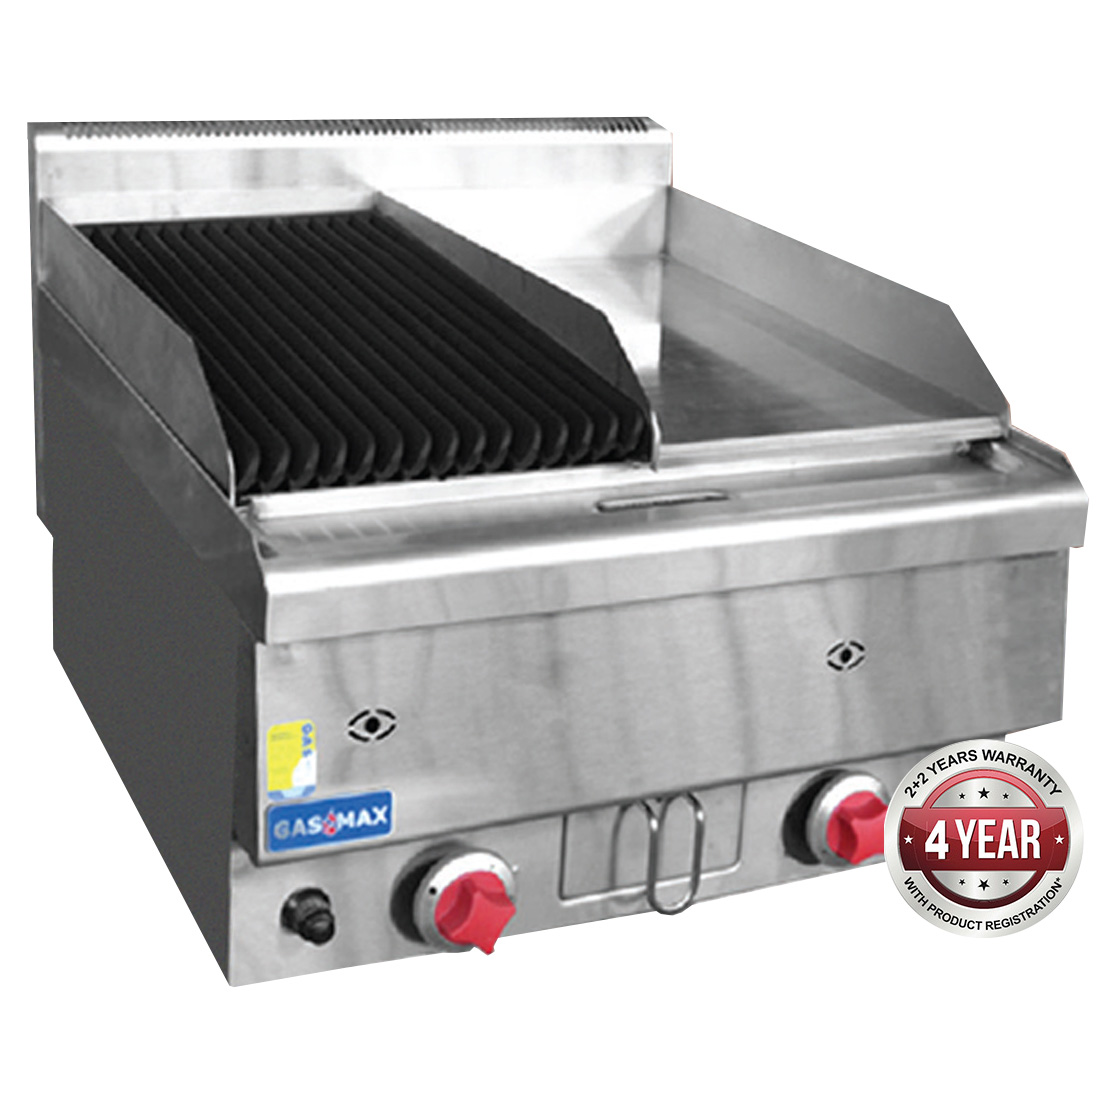 JUS-TRGH60LPG GASMAX Benchtop LPG Gas Combo 1/2 Char & 1/2 Griddle